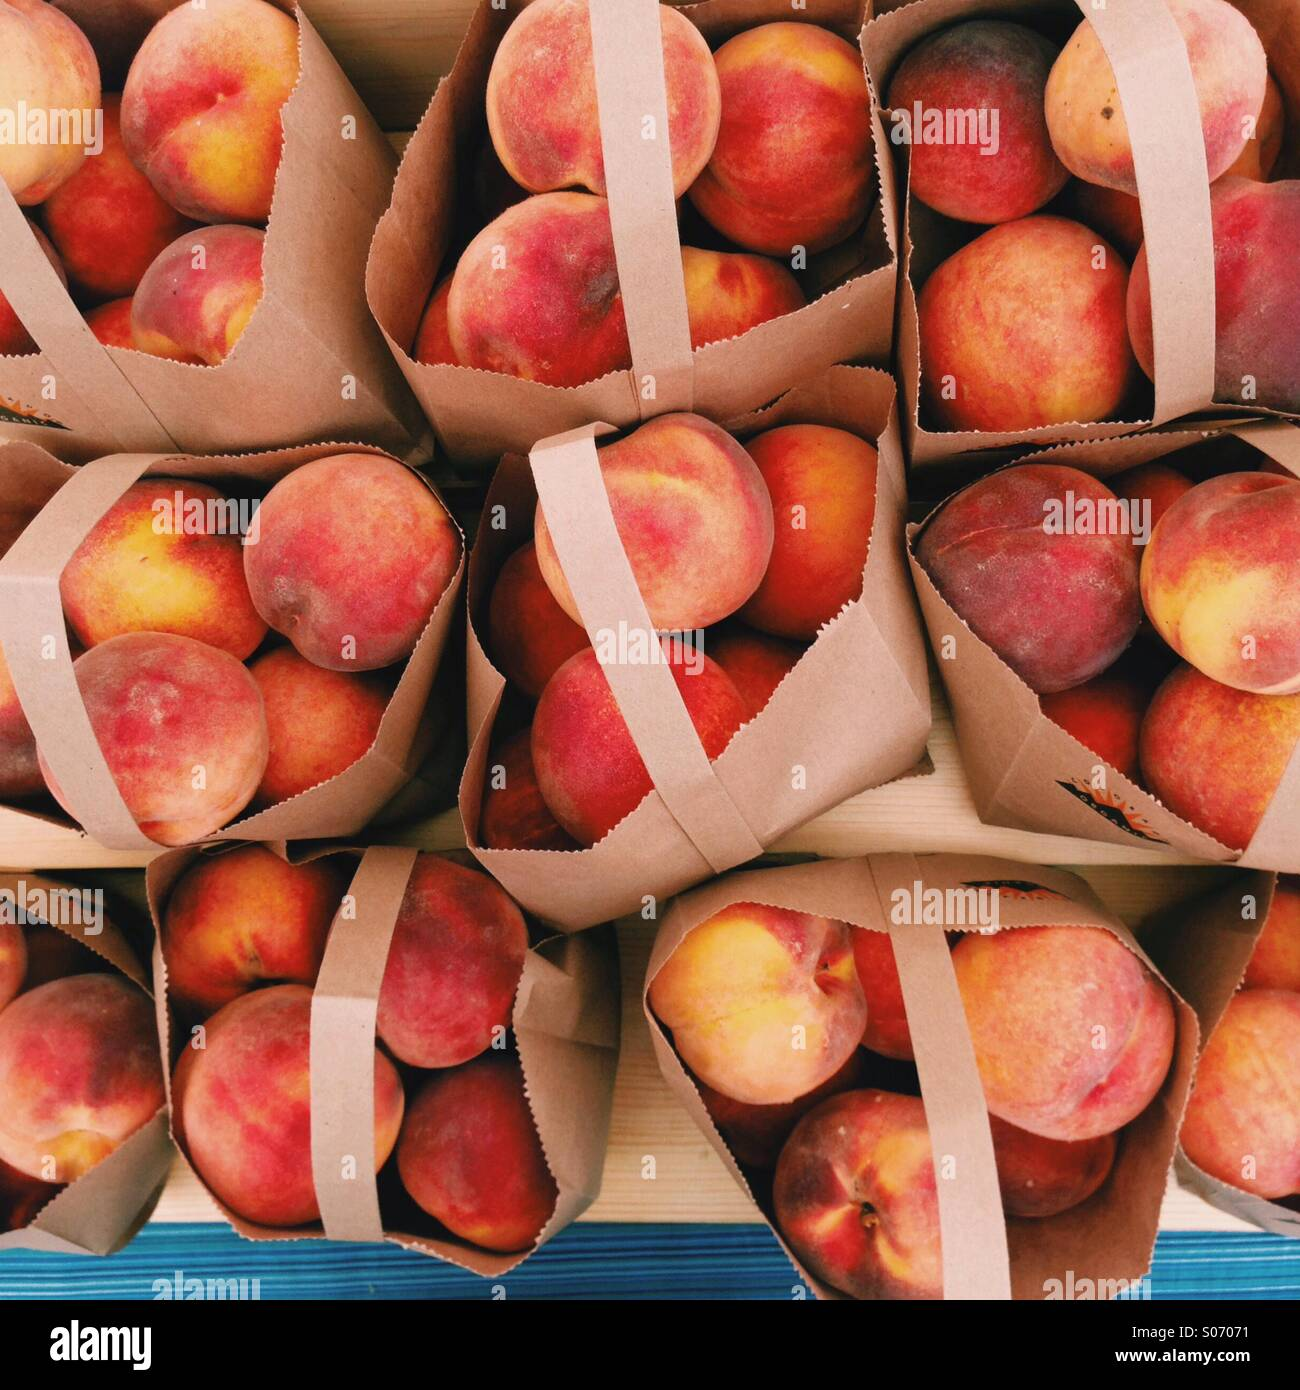 Farmers Market Peaches - Stock Image